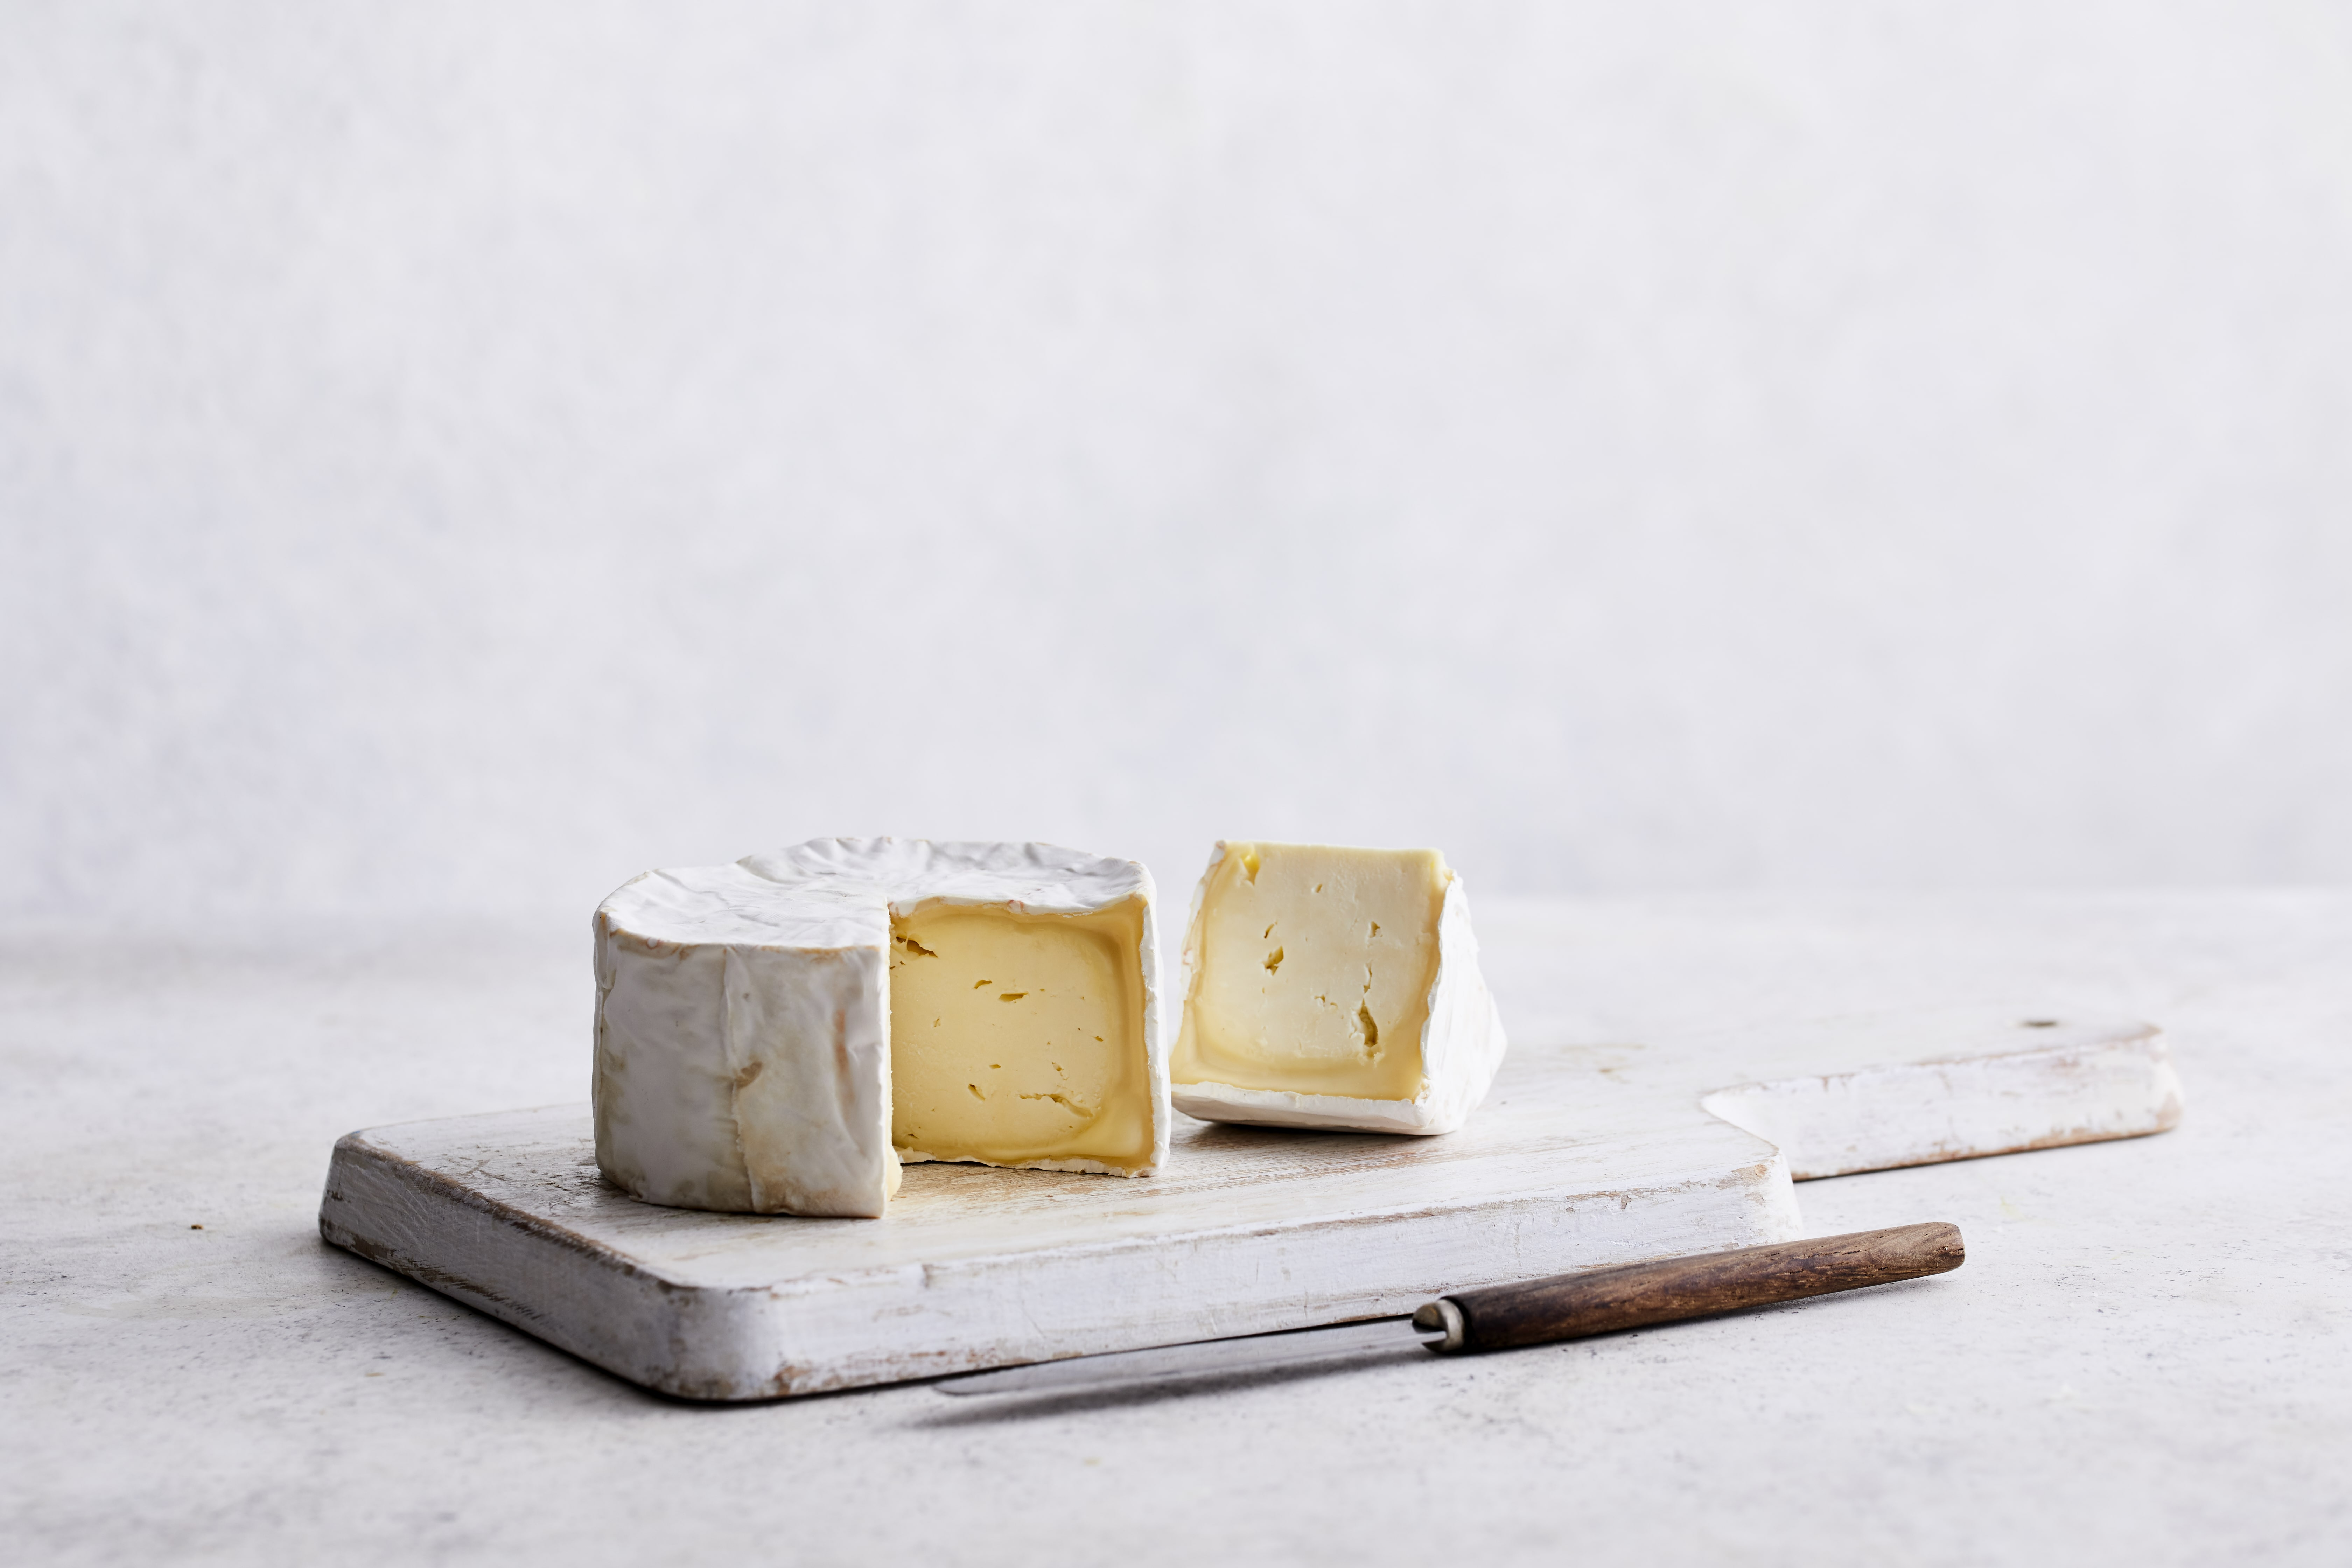 bordbia_cheese_1192007751-min.jpg